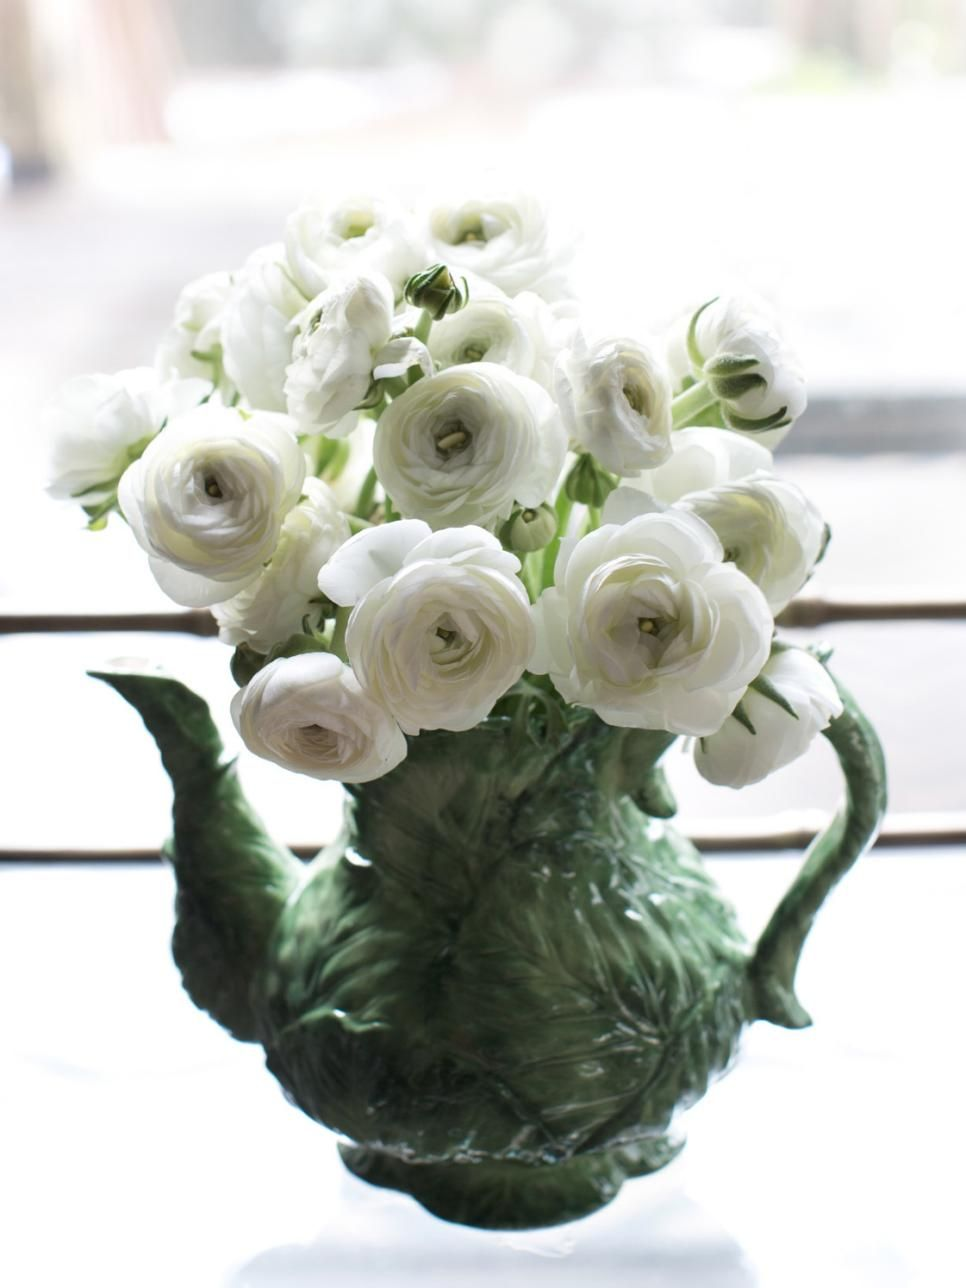 Spring Flower Arrangements La Flor Pinterest Flowers Spring